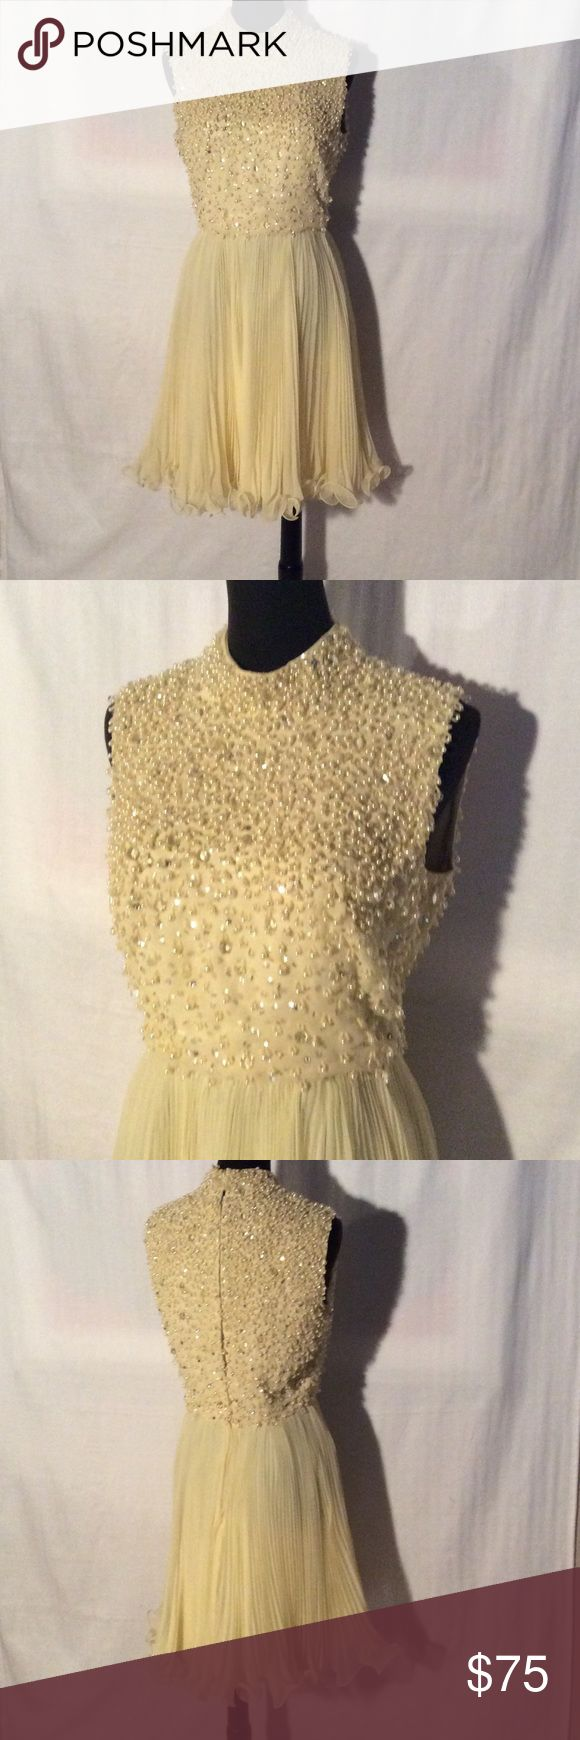 Chiffon Dress - Pleated Skirt and Embellished Top 1960's pale yellow chiffon dress with plissé pleated skirt and embellished top. Crystals, beads and pearls adorn the bodice. The measurements are approximately: bust 36 waist 29 hip 37. It is a size 6. I have no idea the original price. Dresses Midi